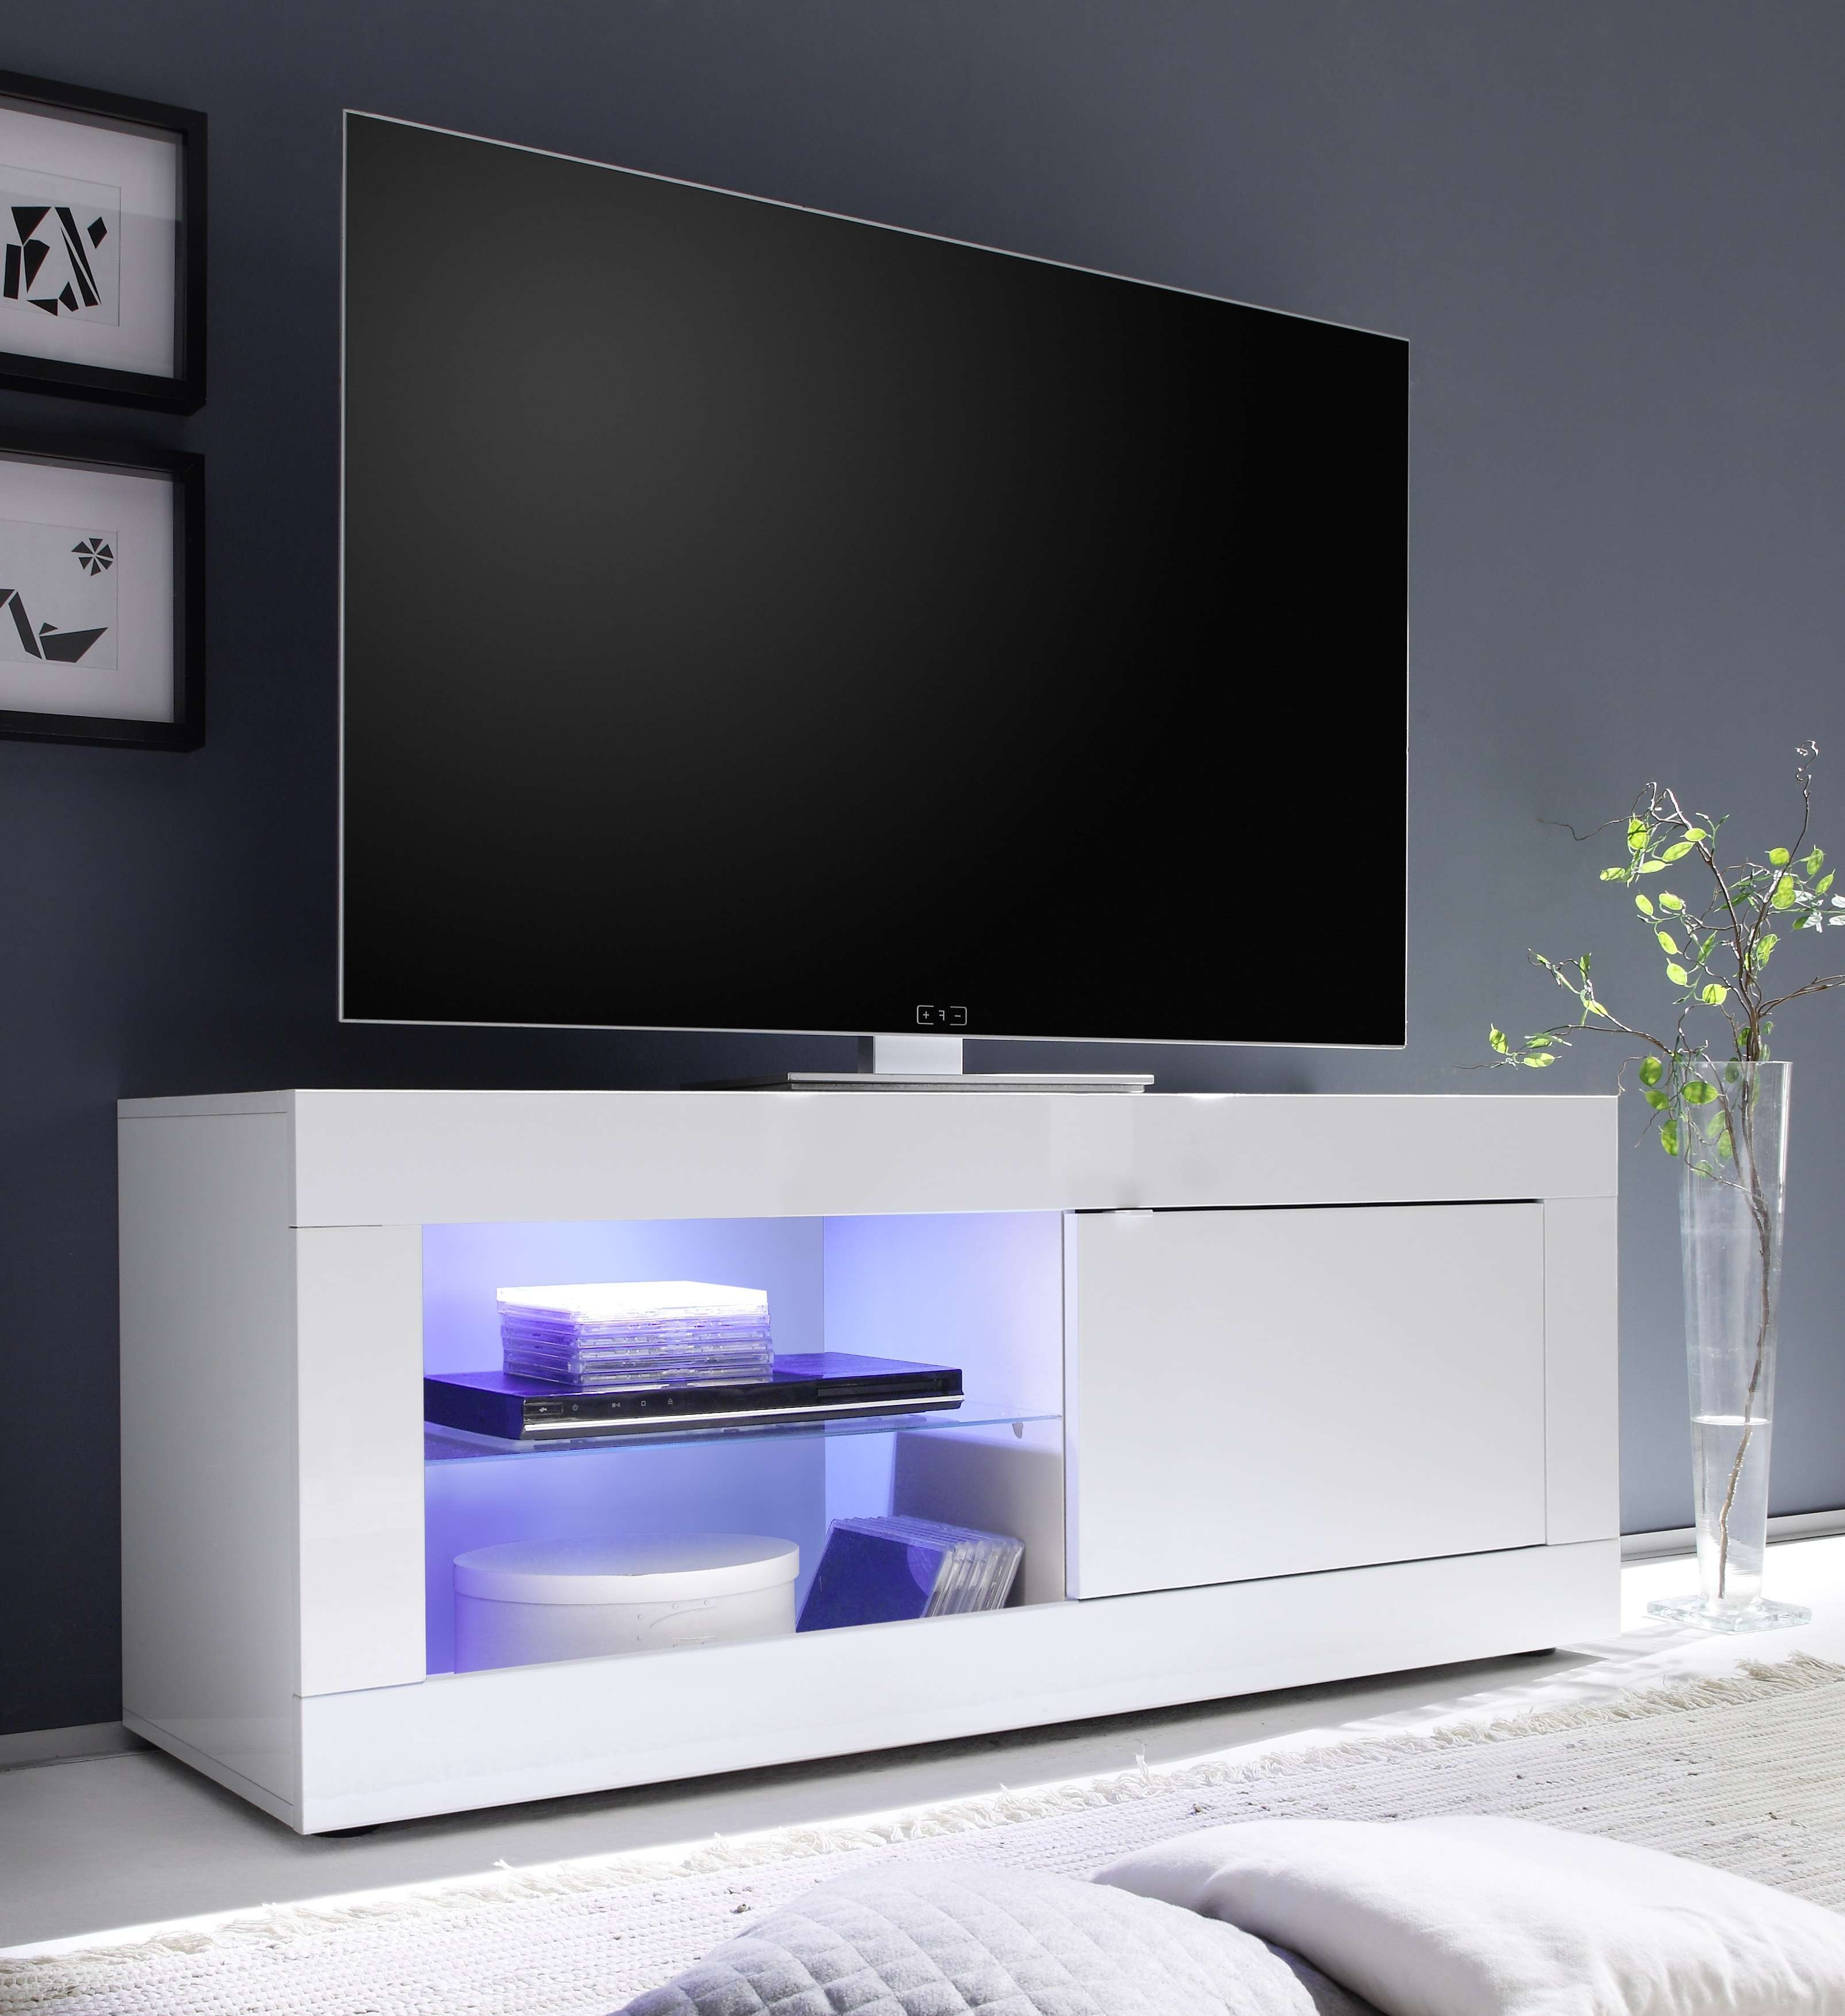 Basic Small Tv Stand, All White Buy Online At Best Price – Sohomod Pertaining To Small White Tv Stands (View 2 of 15)